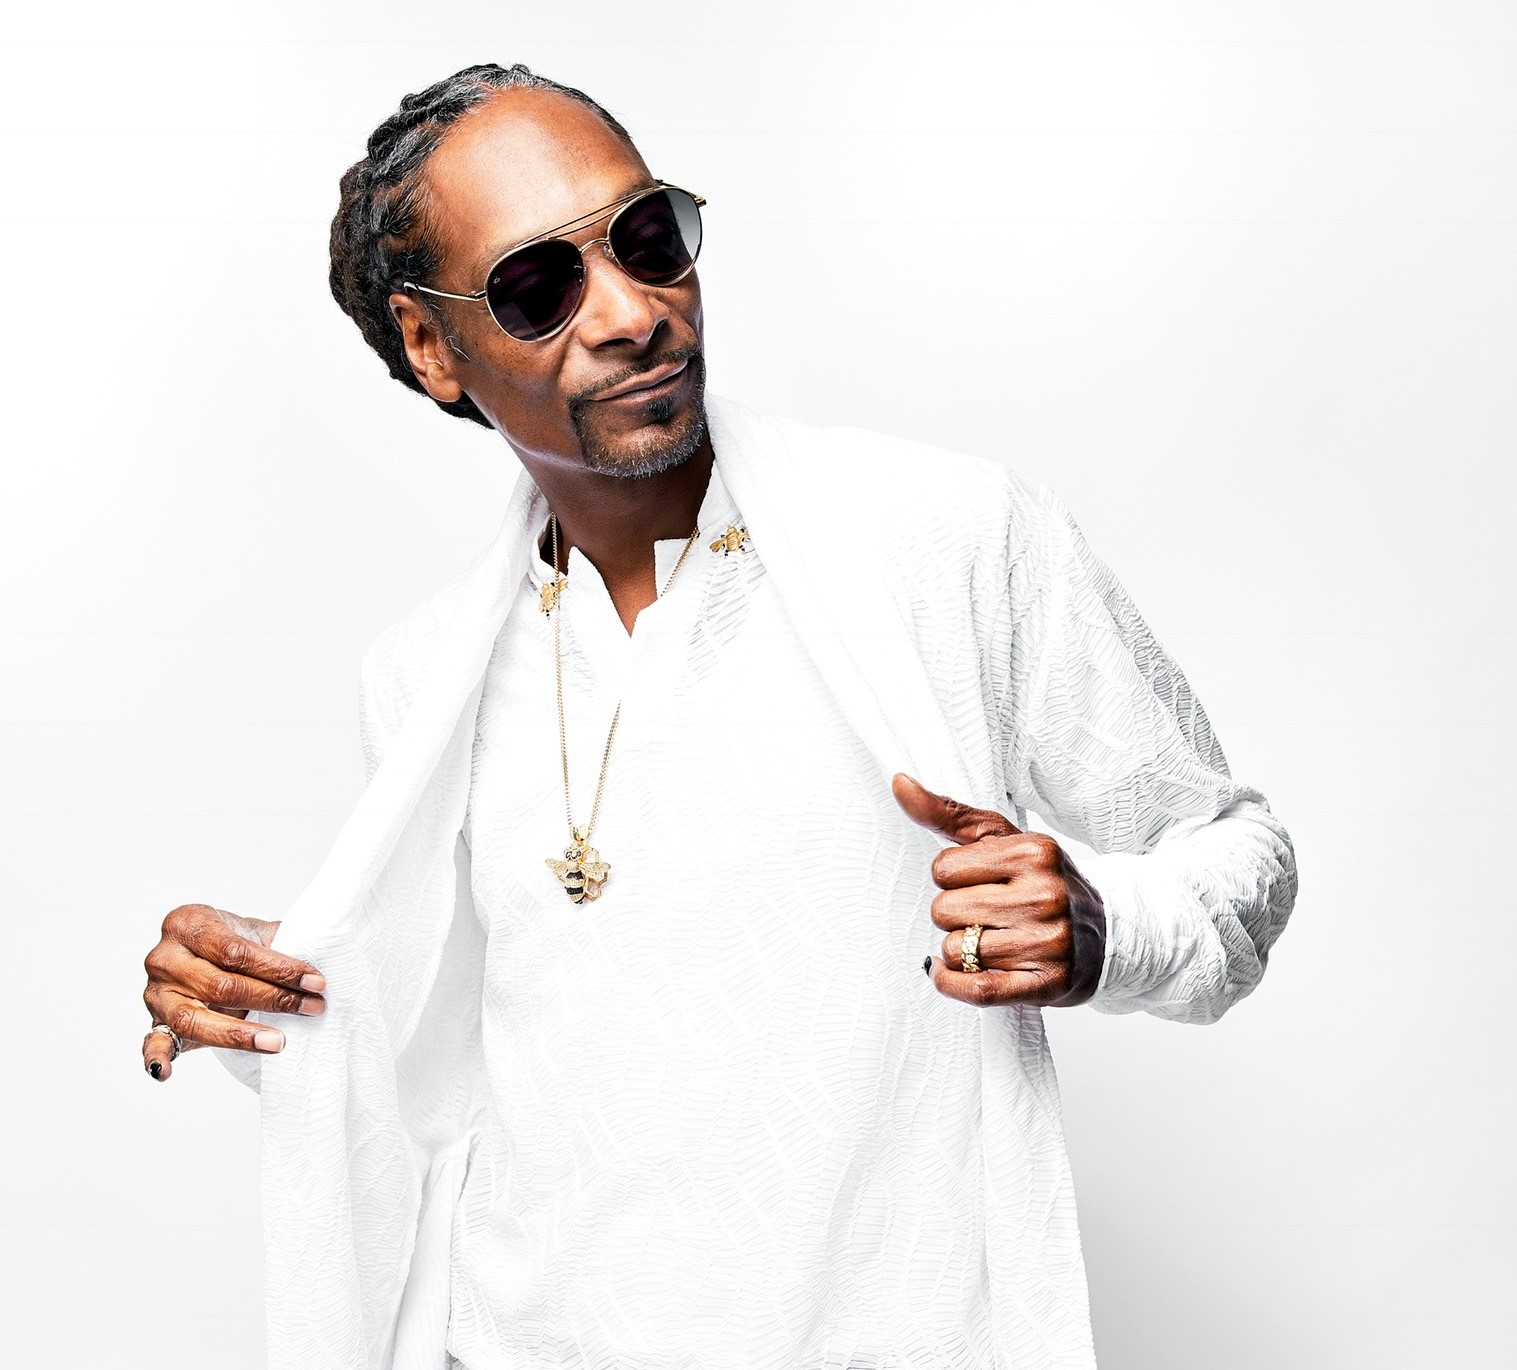 Snoop Dogg To Appear at Mohegan Sun Wine & Food Fest